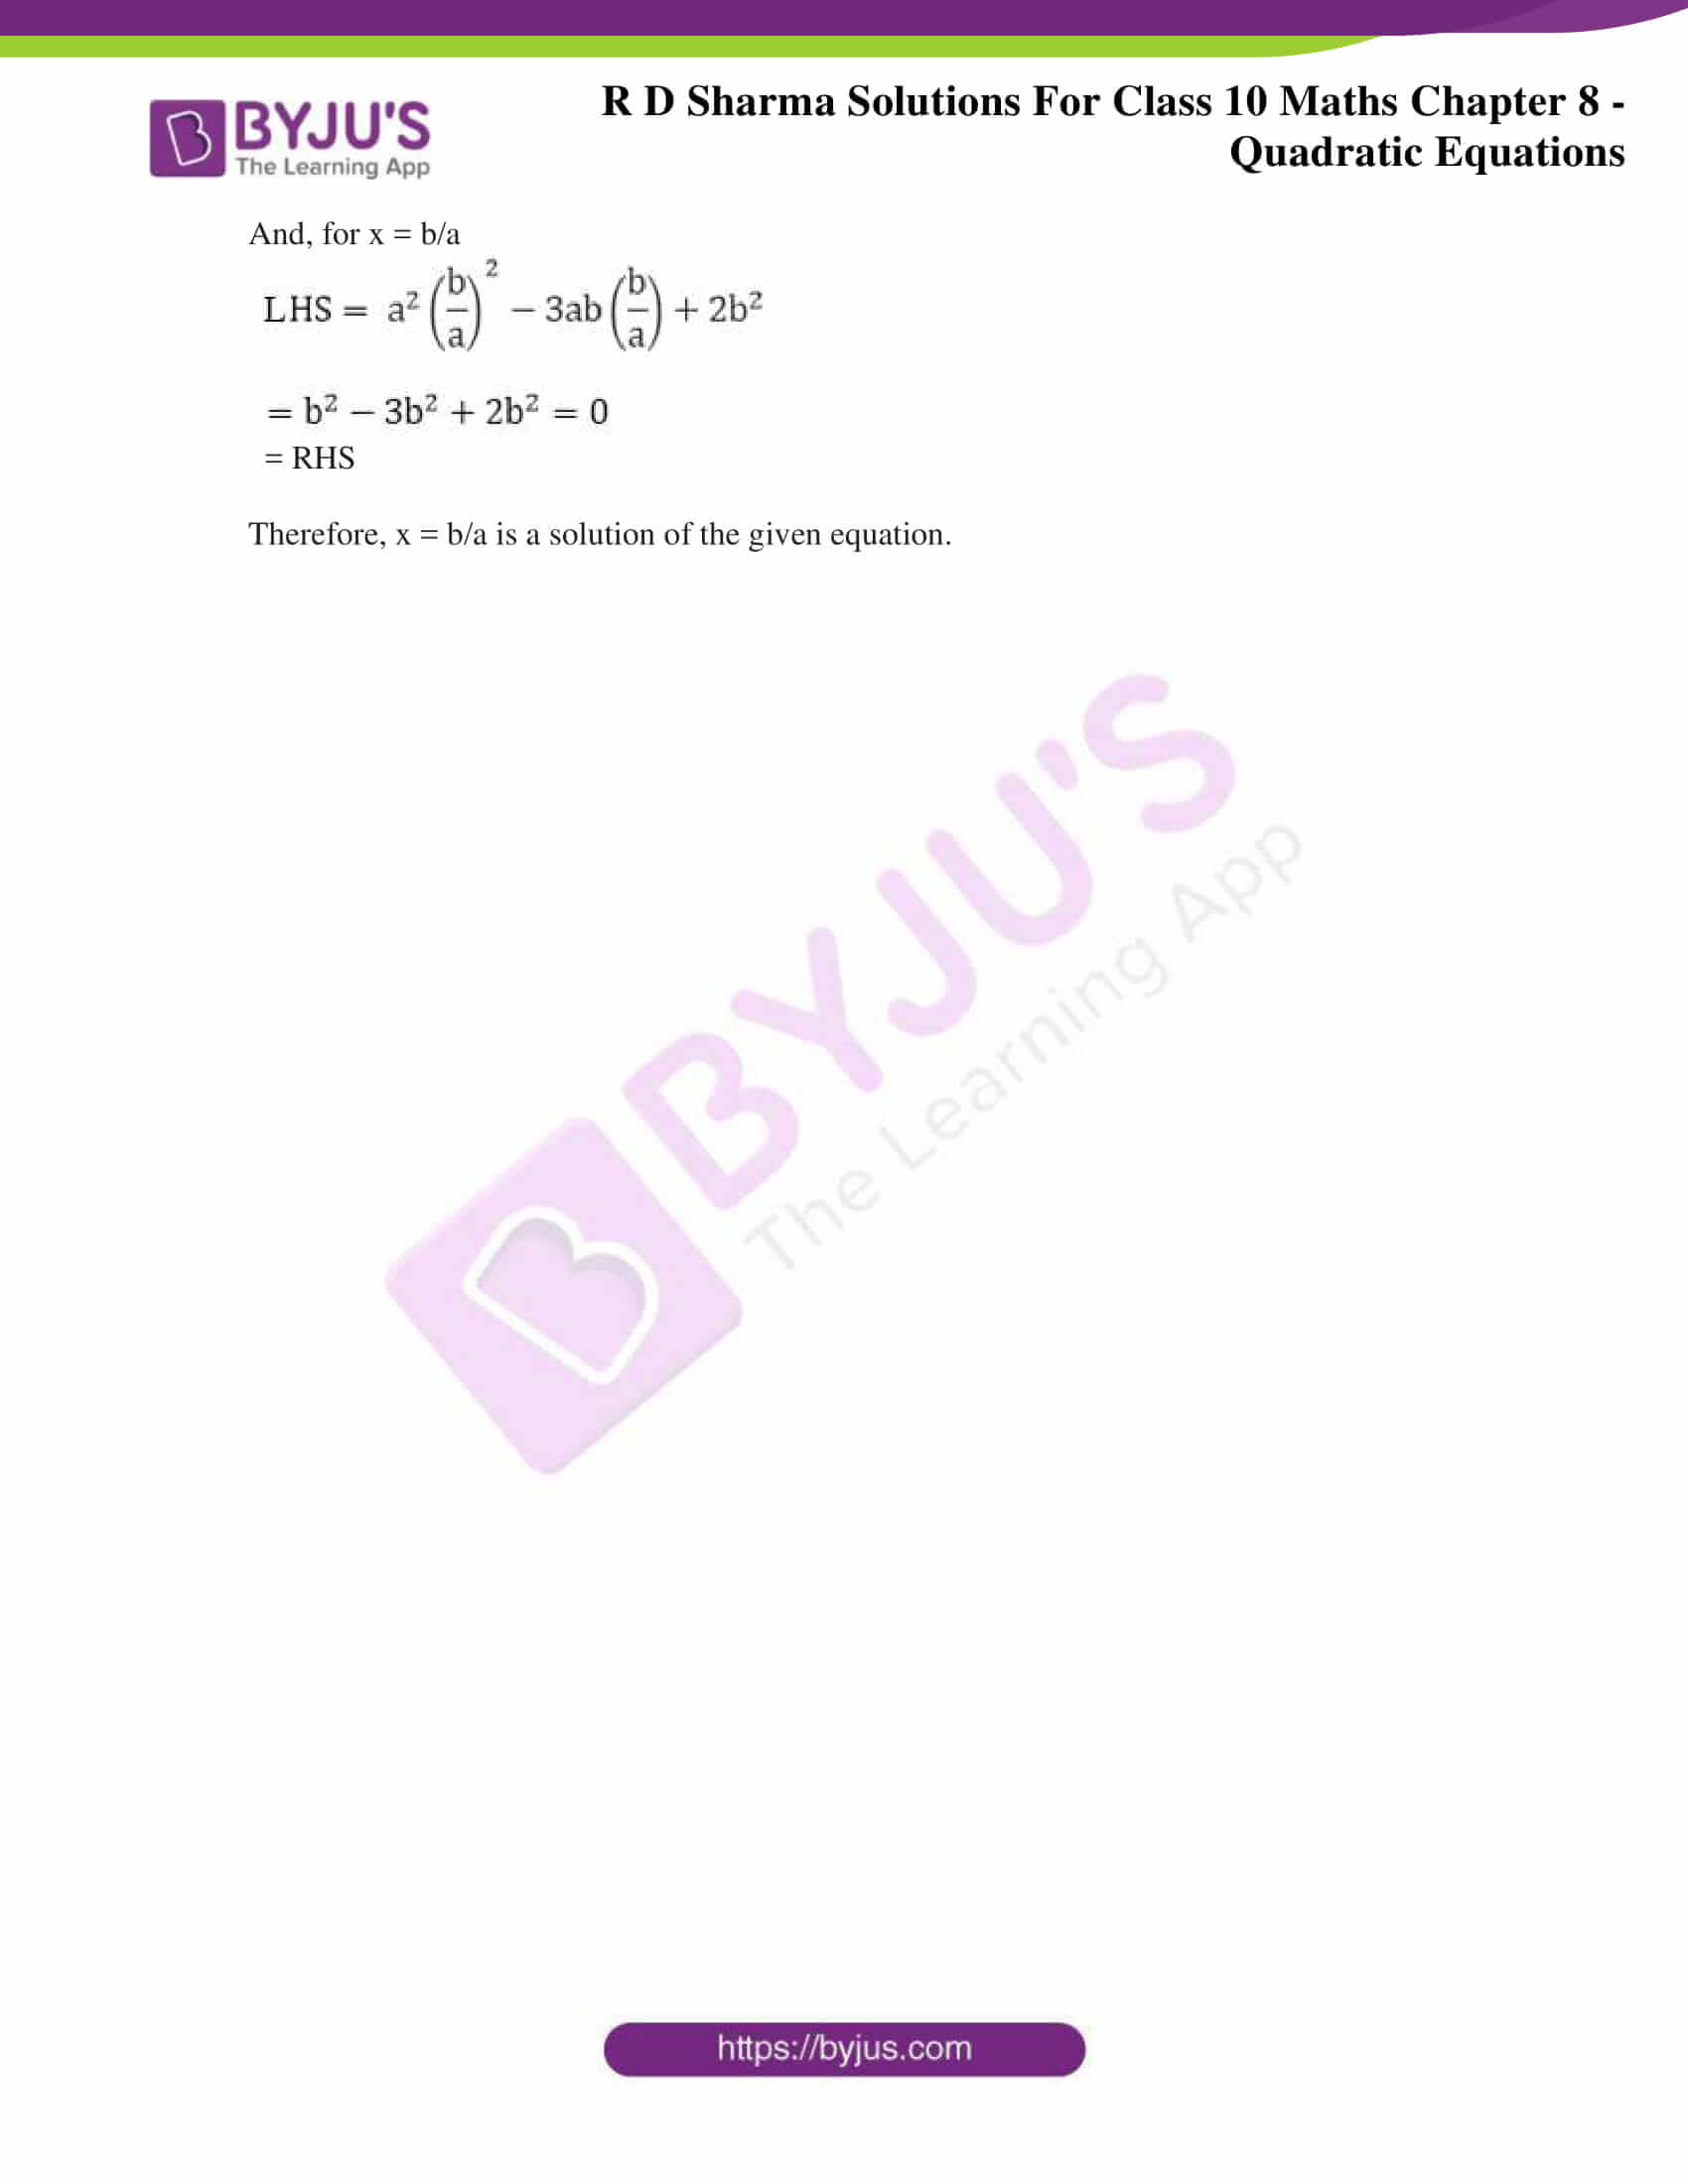 RD Sharma Solutions for Class 10 Chapter 8 Quadratic Equations 07